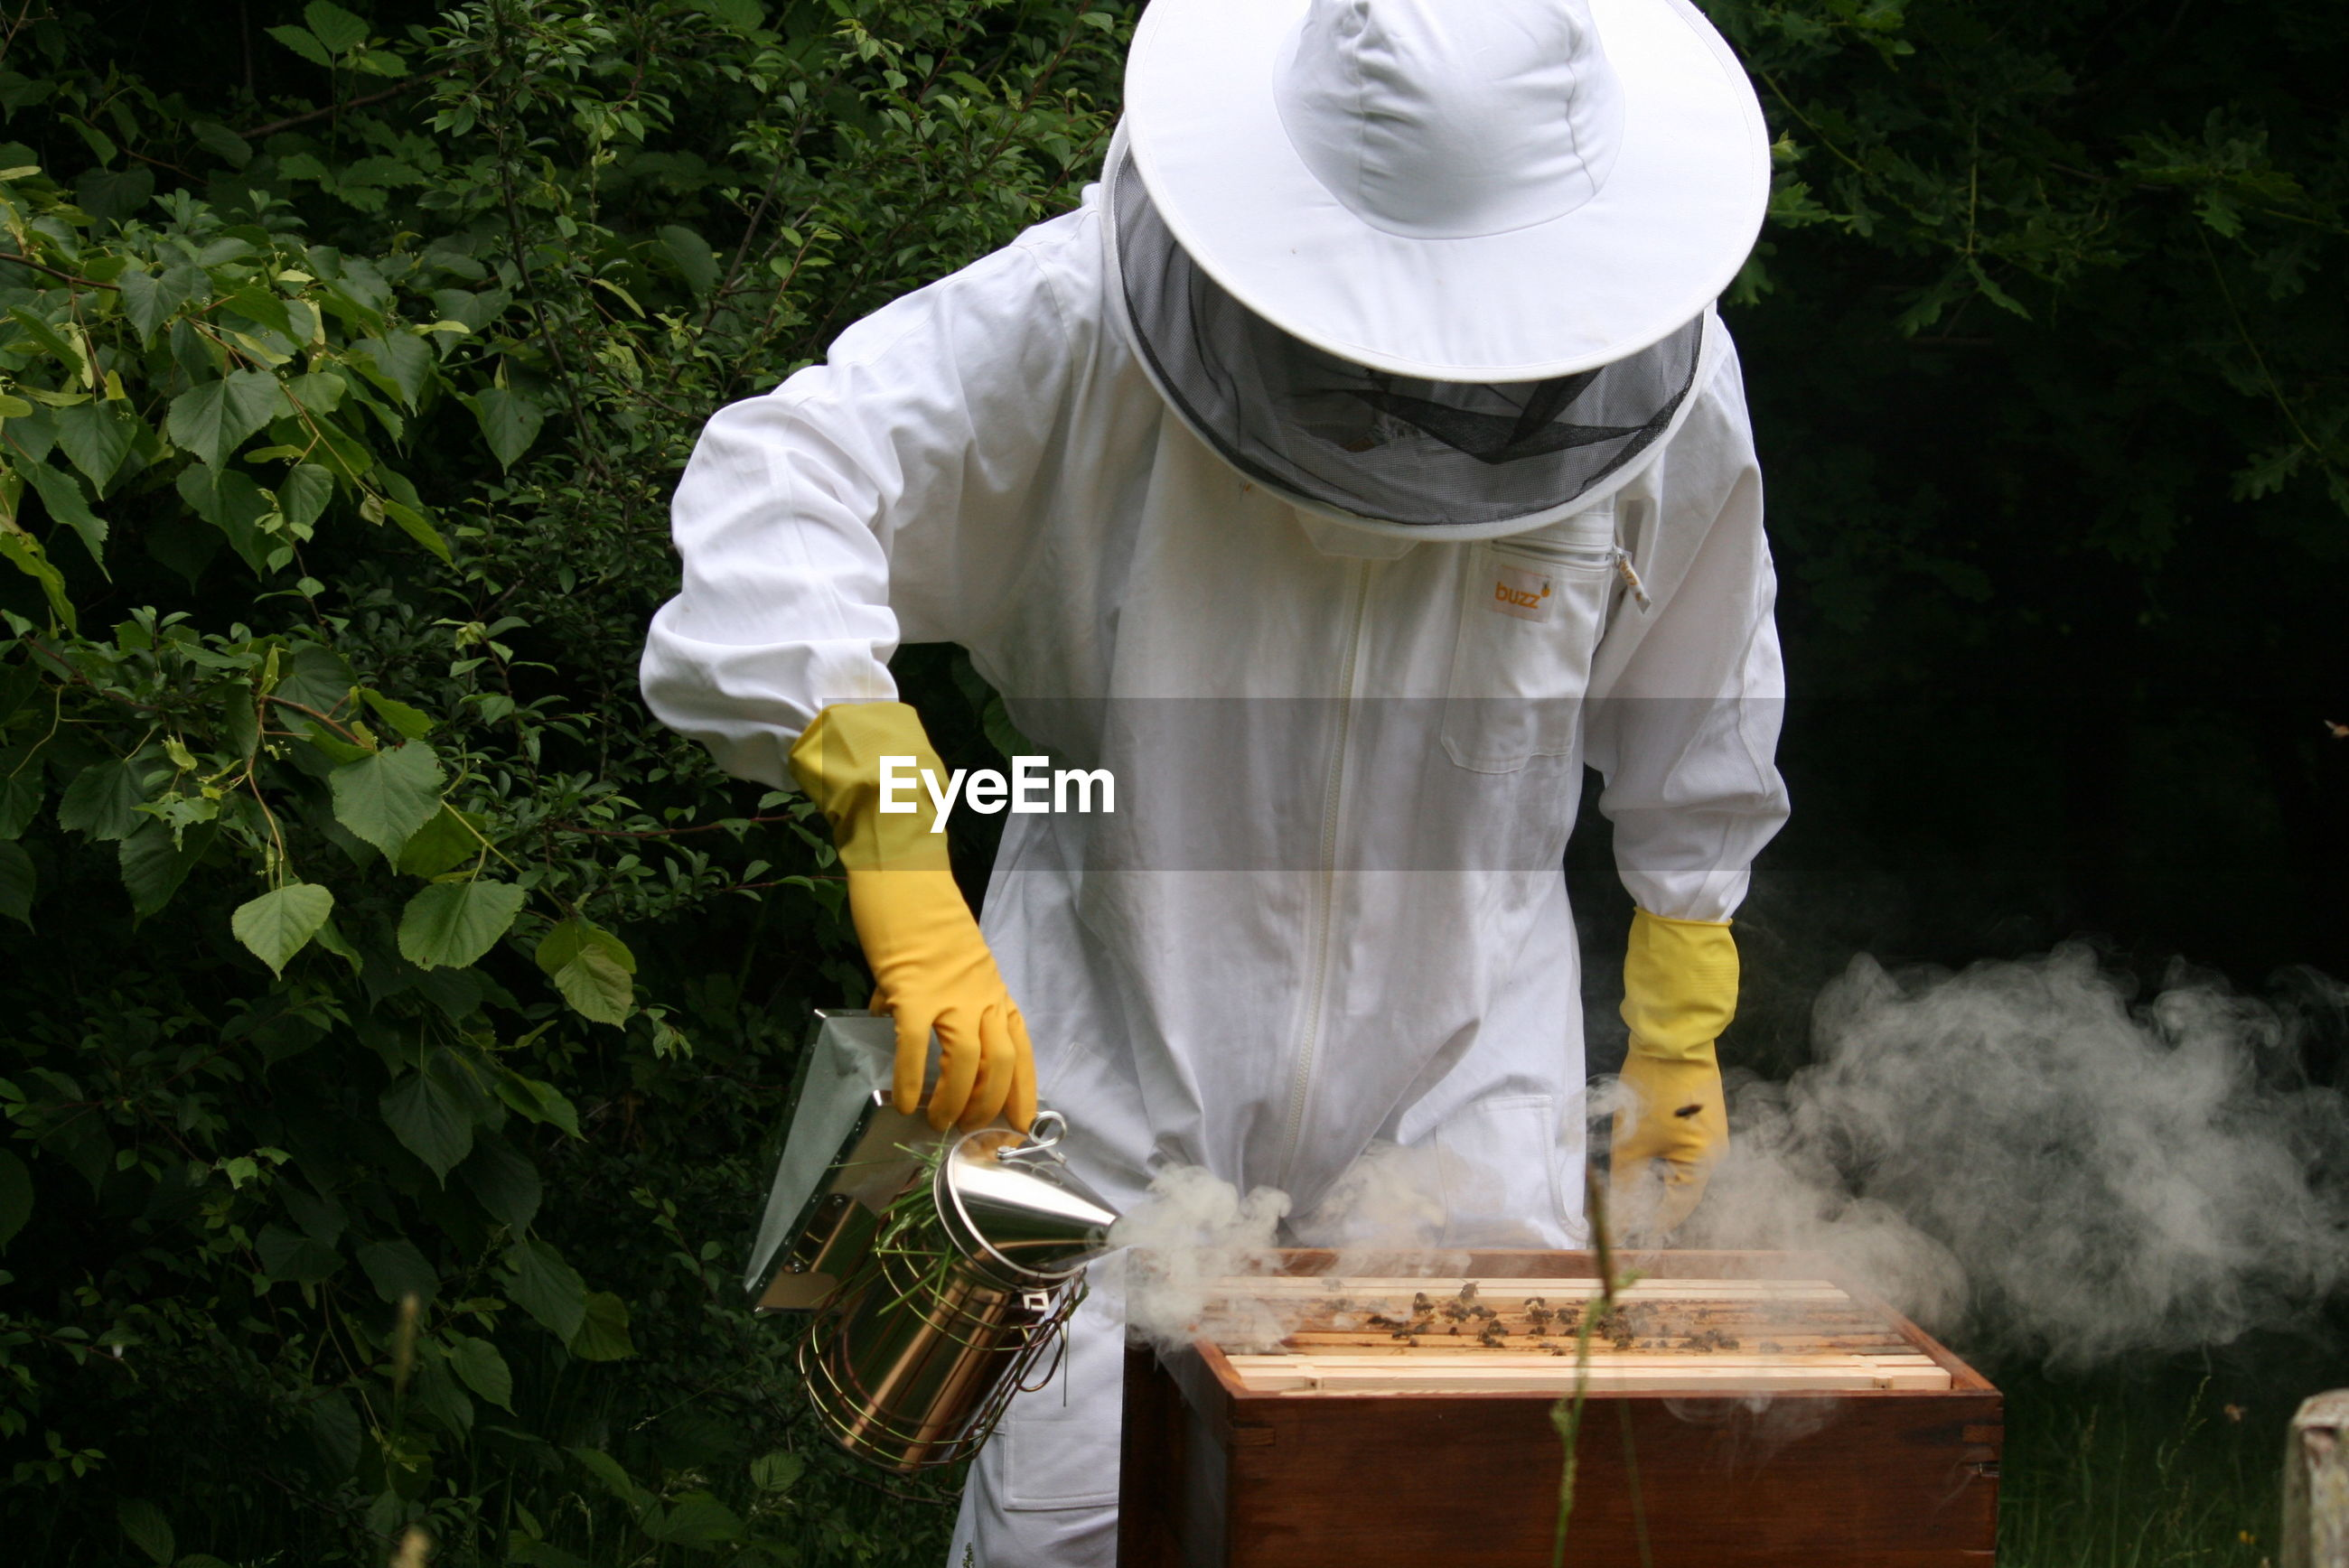 Beekeeper in protective suit examining bees on honeycomb